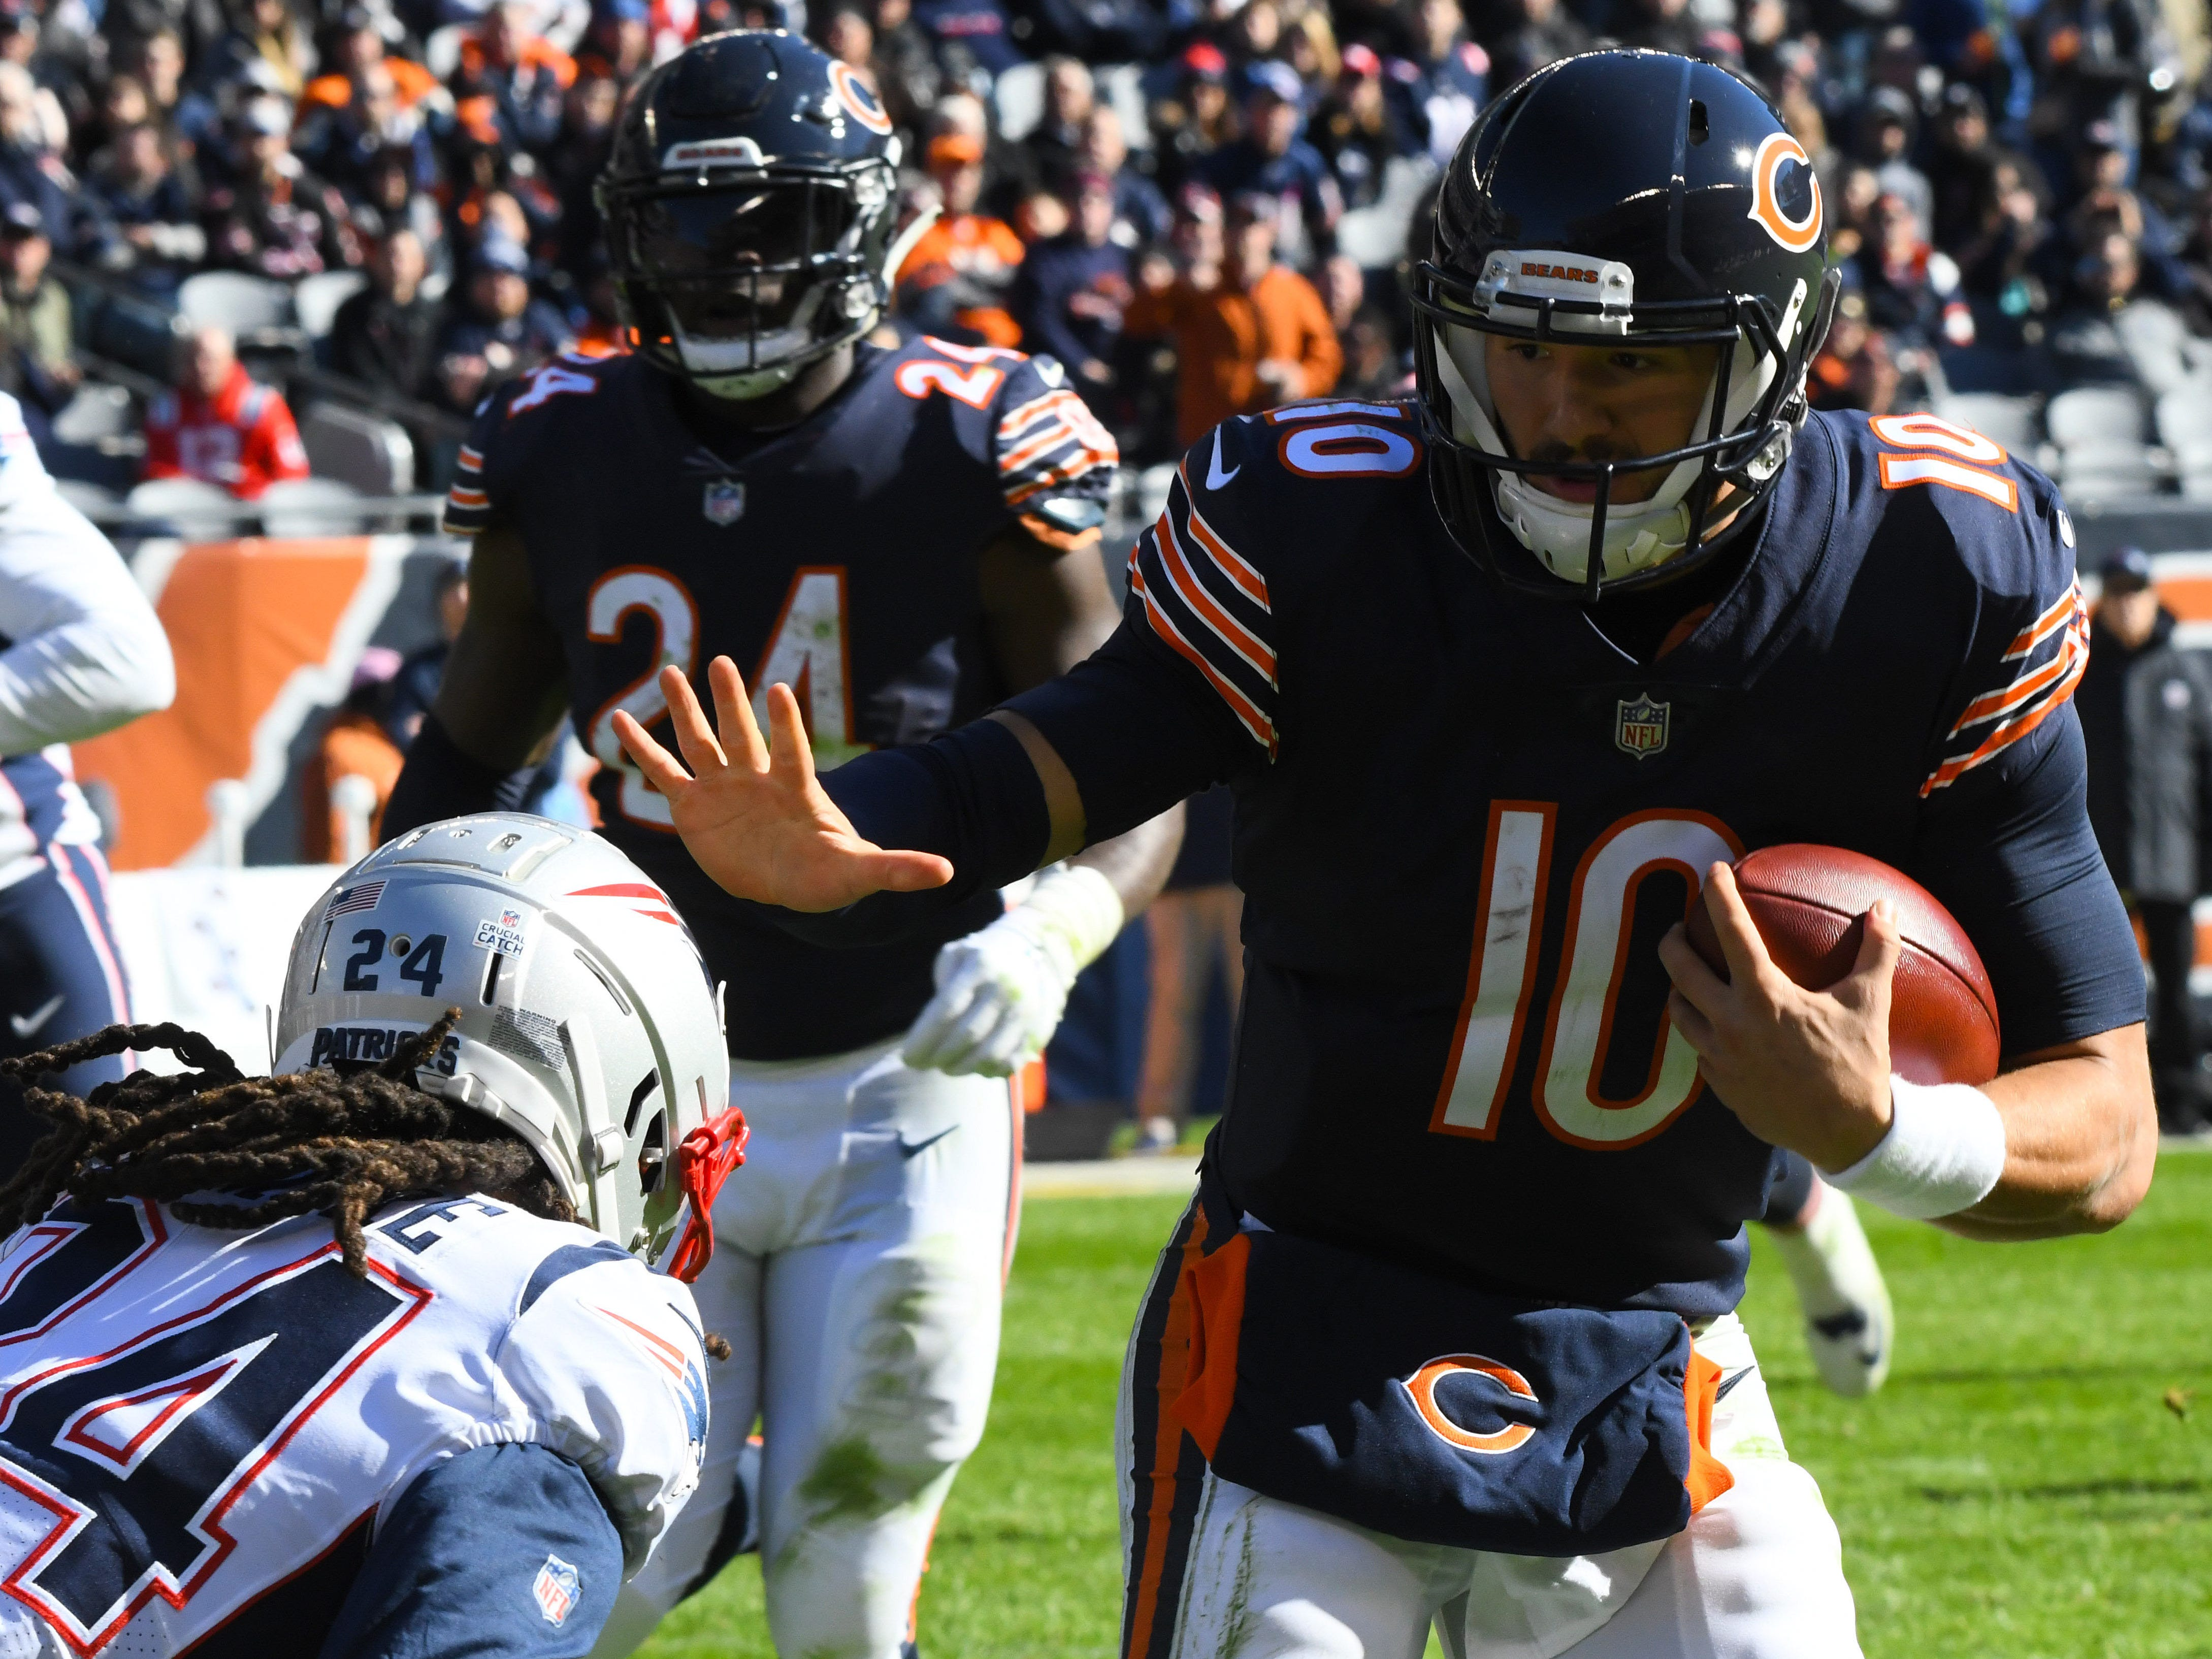 15. Bears (15): Mitch Trubisky glad we only obsess over pass efficiency, not run efficiency. (FYI, shortest distance between two points is a straight line.)